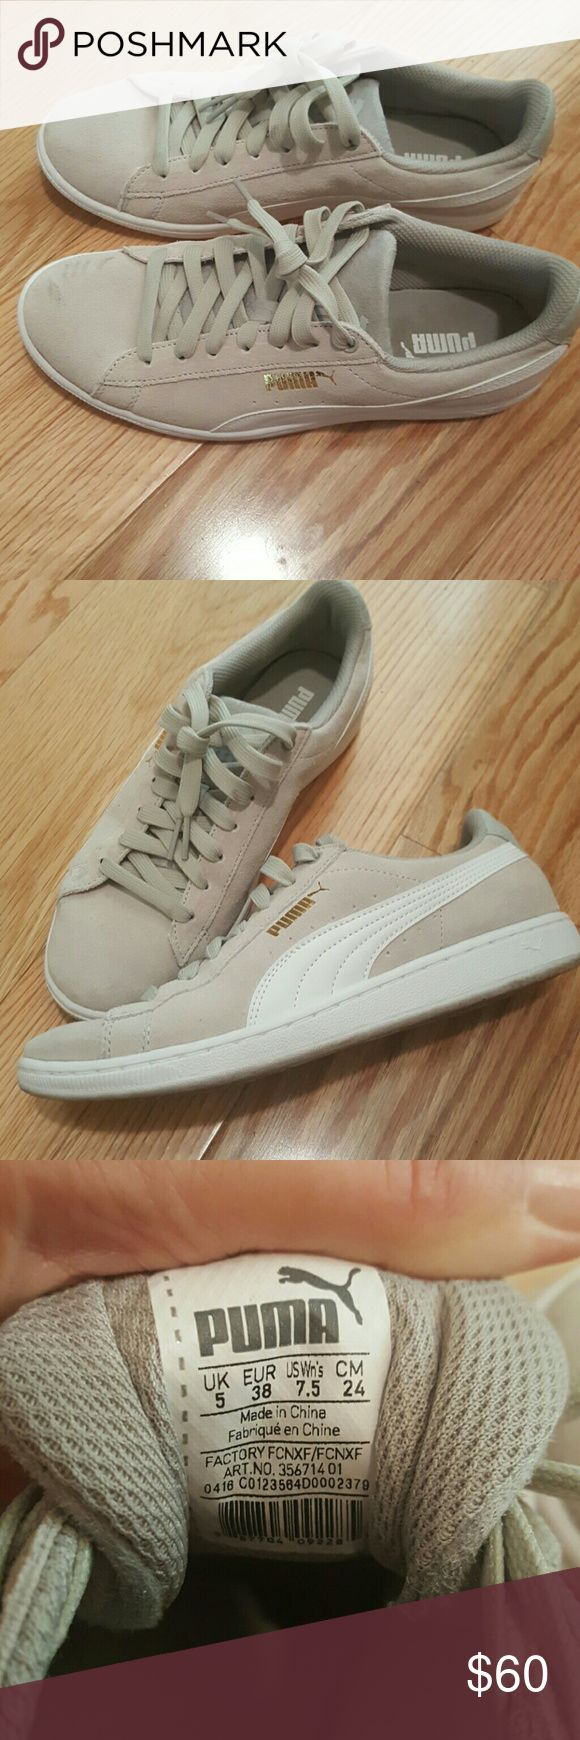 Classic PUMA Like New light gray suede Worn across the street for dinner and back ONLY! Bought at Saks!  Has gold PUMA label - so chic.  I accidentally bought the wrong size and I'm so bummed to have to list them!  LIKE NEW!!! Puma Shoes Athletic Shoes